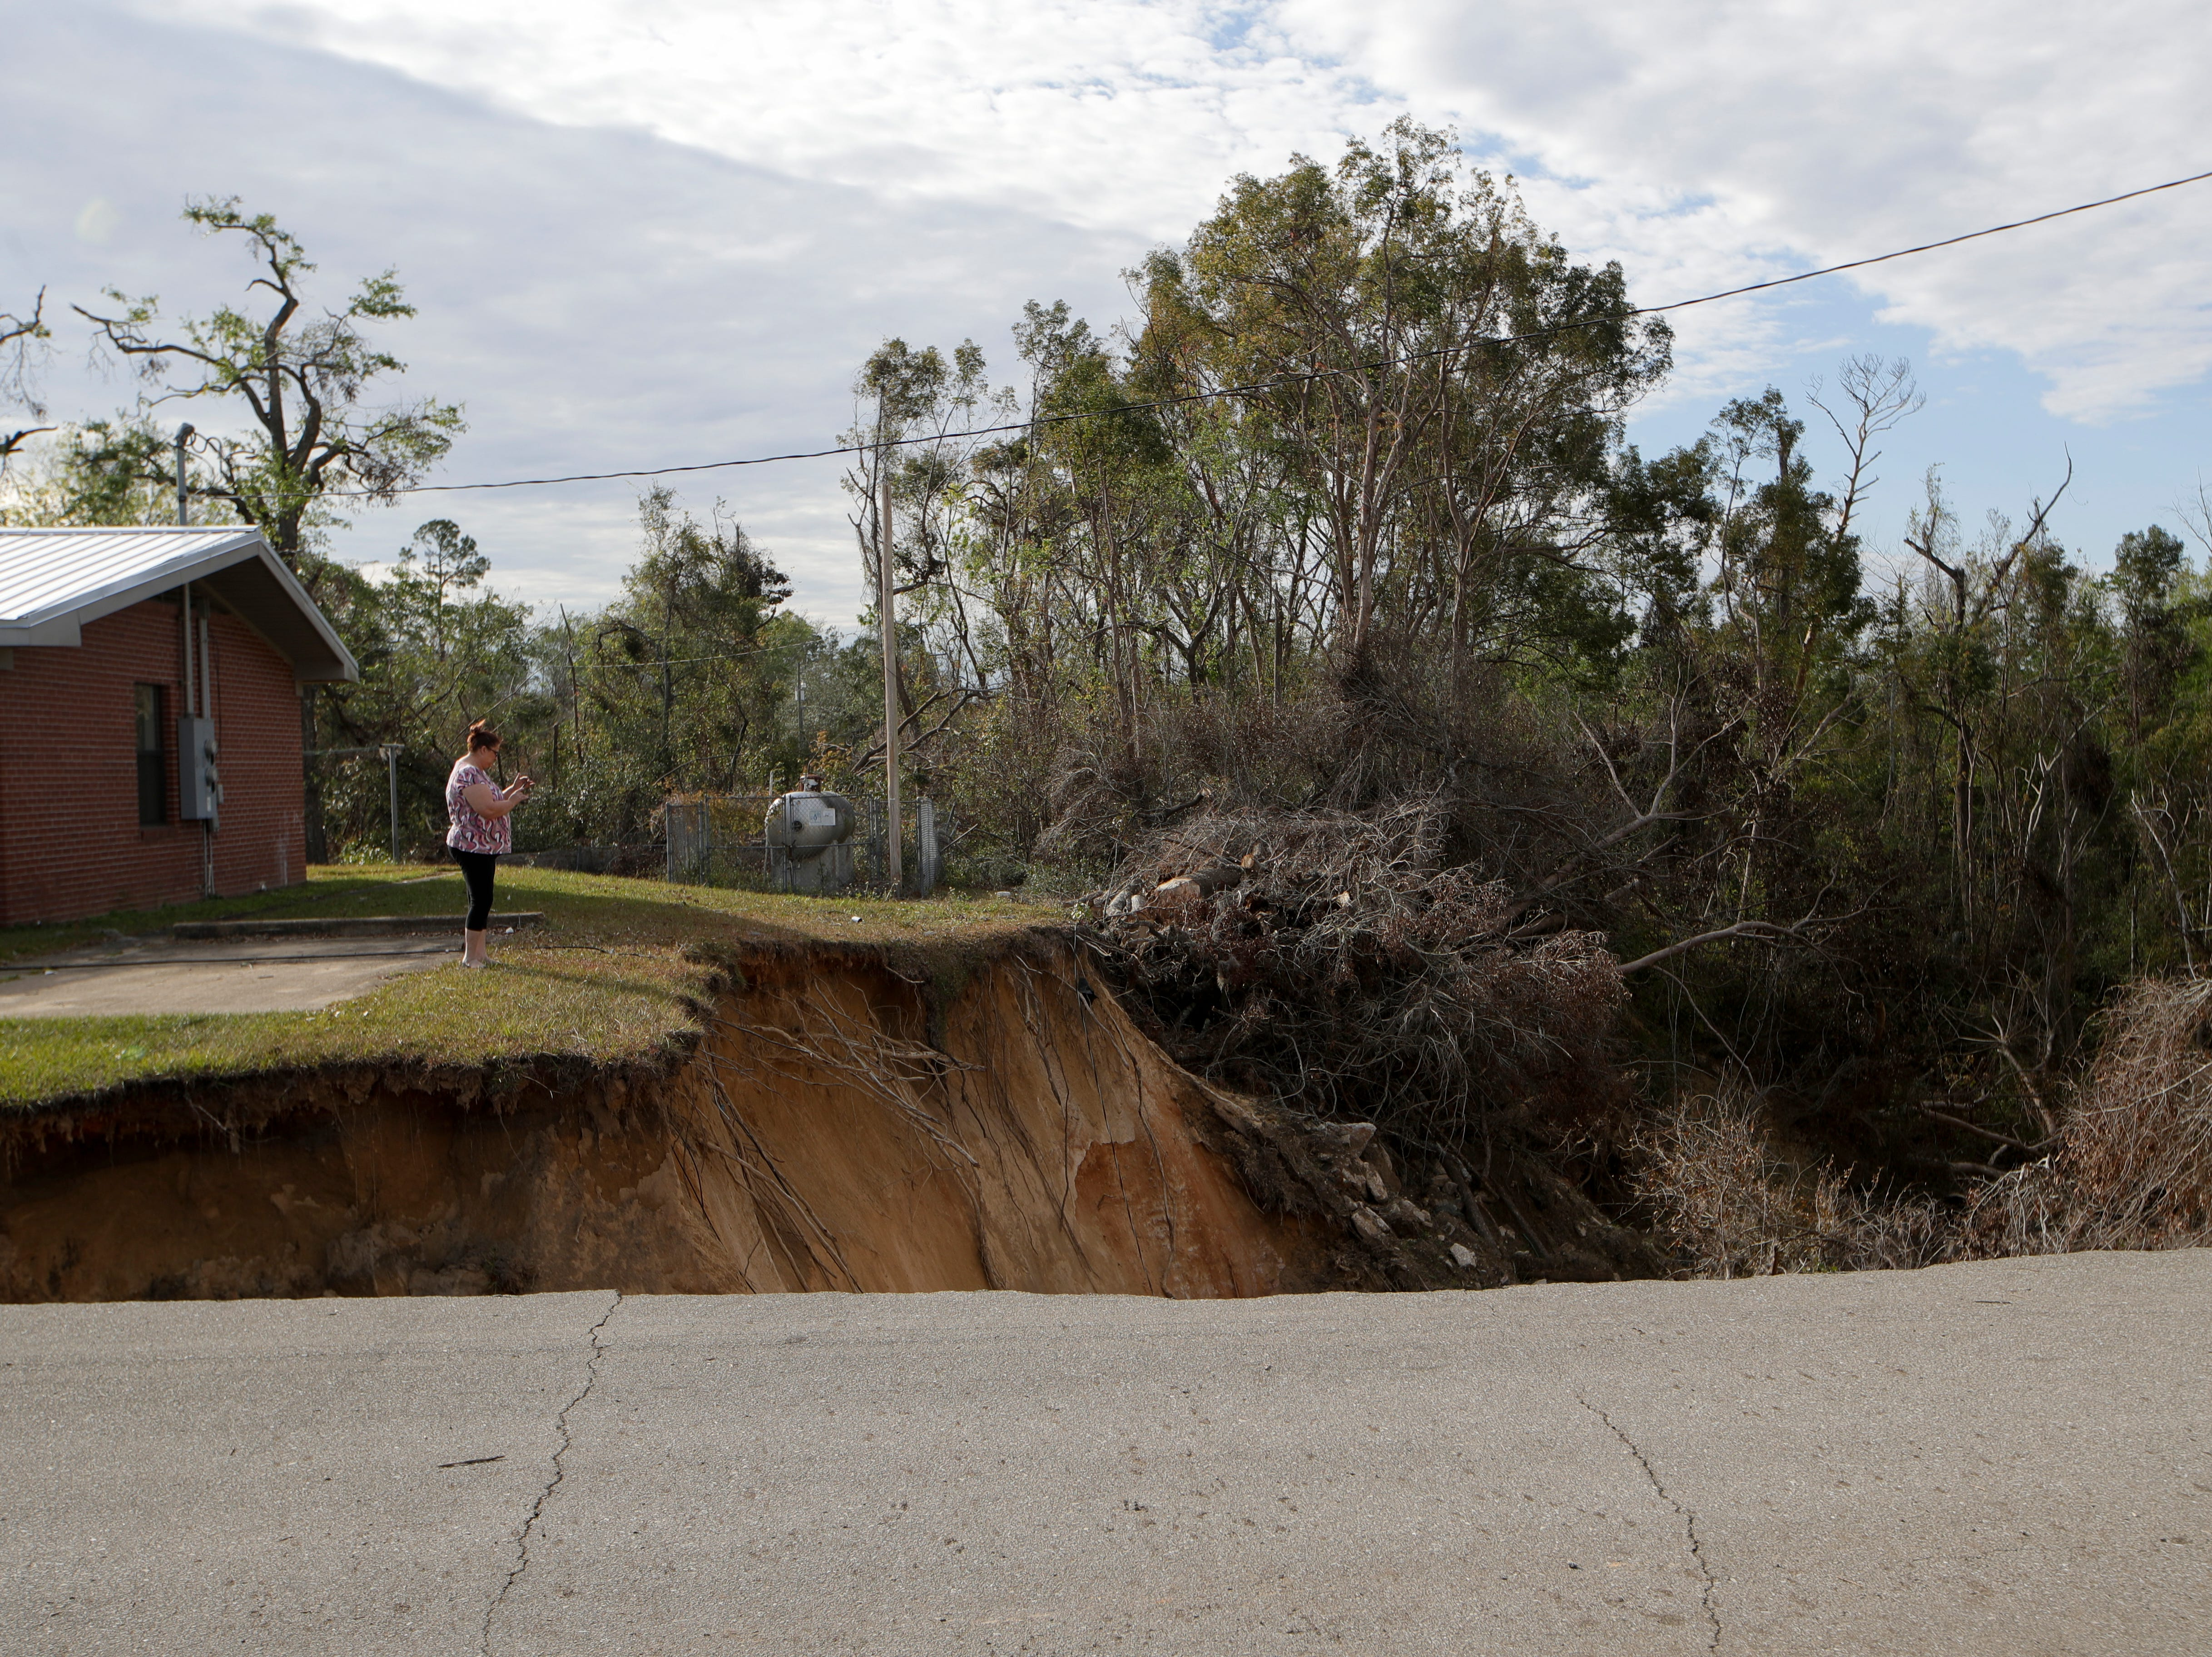 Brenda Peterson stops by the giant hole on Virginia G. Weaver Street in Bristol, Fla. on her way home from work to take a look at the giant hole that has opened up there Friday, Nov. 30, 2018.